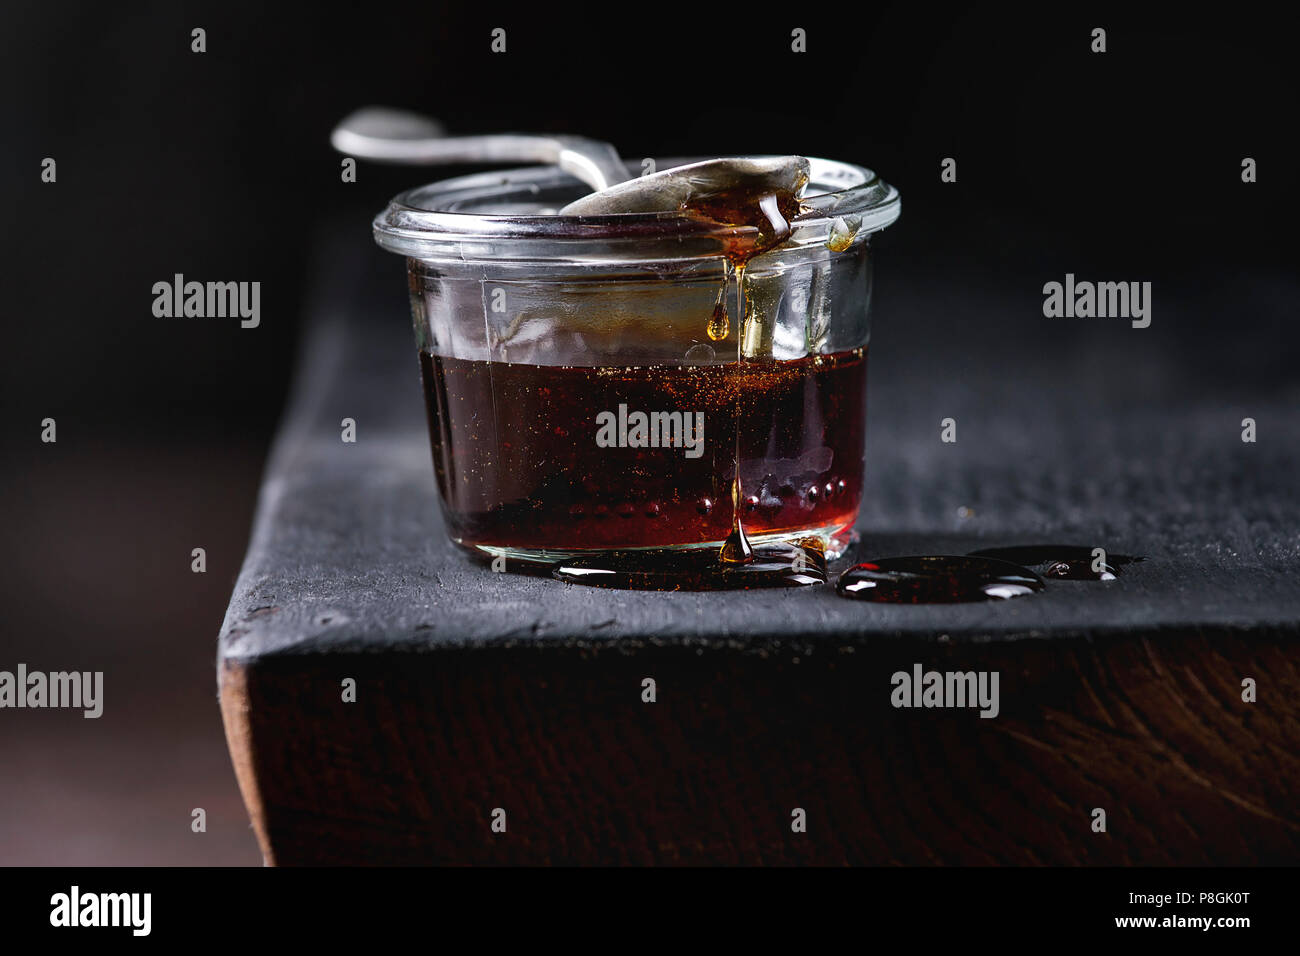 Homemade liquid transparent brown sugar caramel in glass jar standing on black wooden board with spoon. Close up - Stock Image